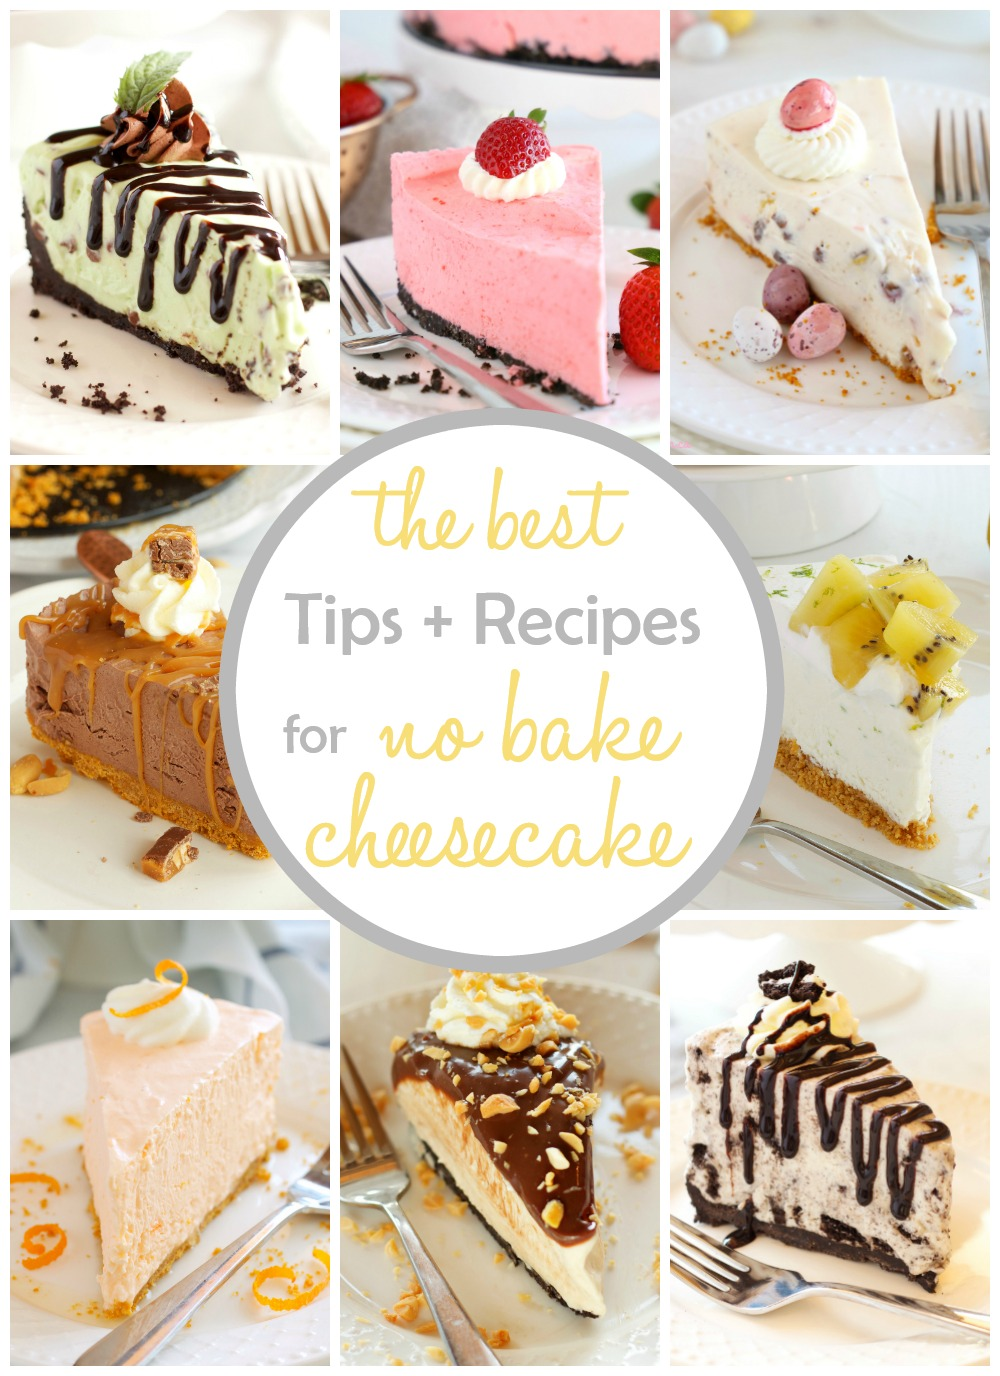 This no bake cheesecake guide is full of the best tips for creating creamy cheesecake without turning on an oven! We'll also share our favorite cheesecake no bake recipes. #nobakecheesecake #cheesecake #recipes via @busybakerblog